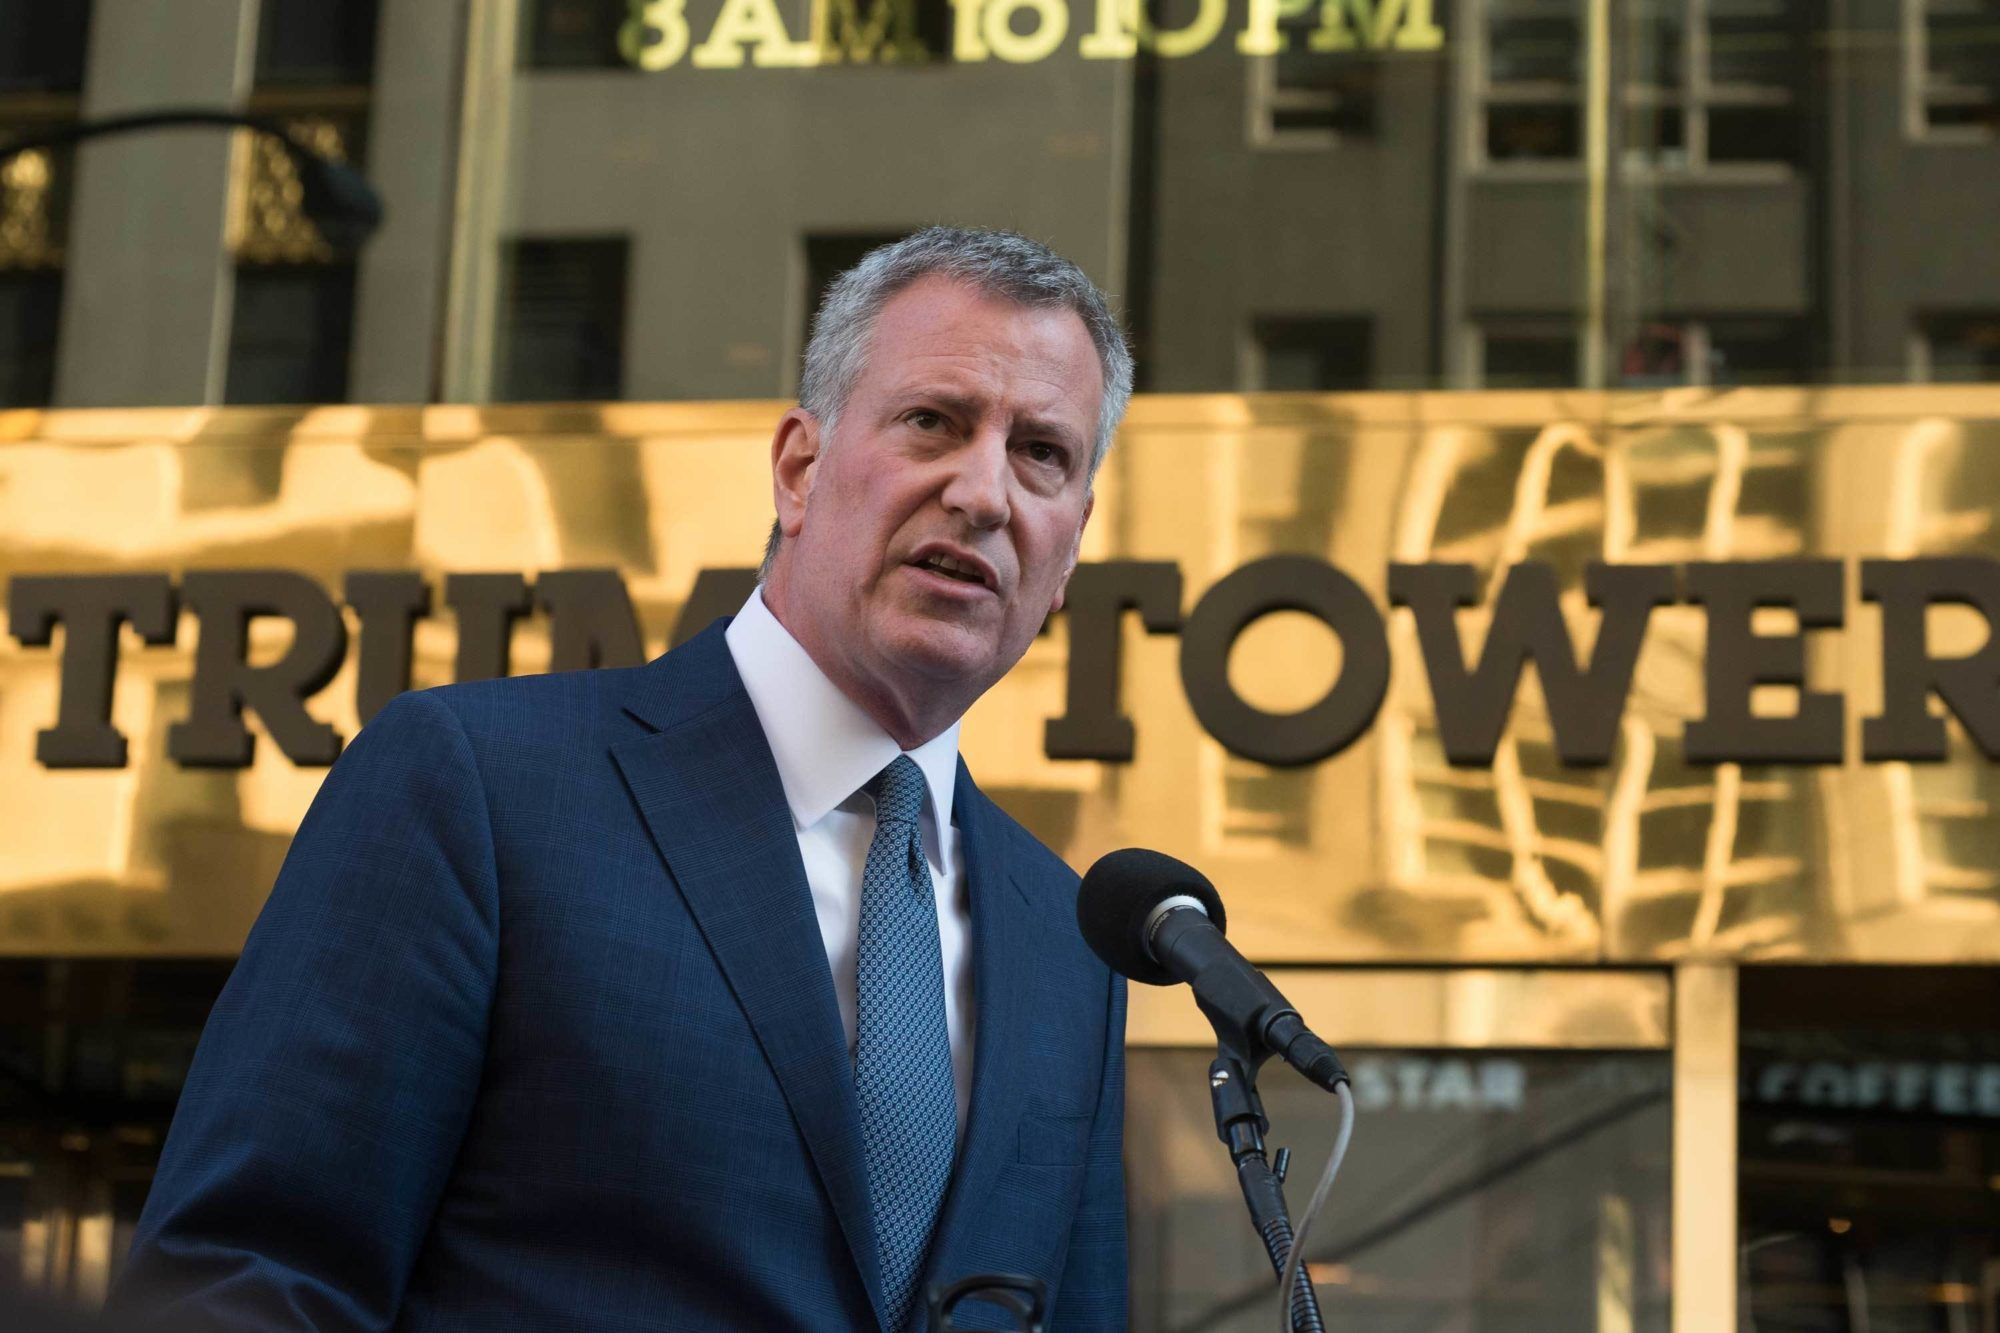 We Found Major Trump Tax Inconsistencies. New York's Mayor Wants a Criminal Investigation.